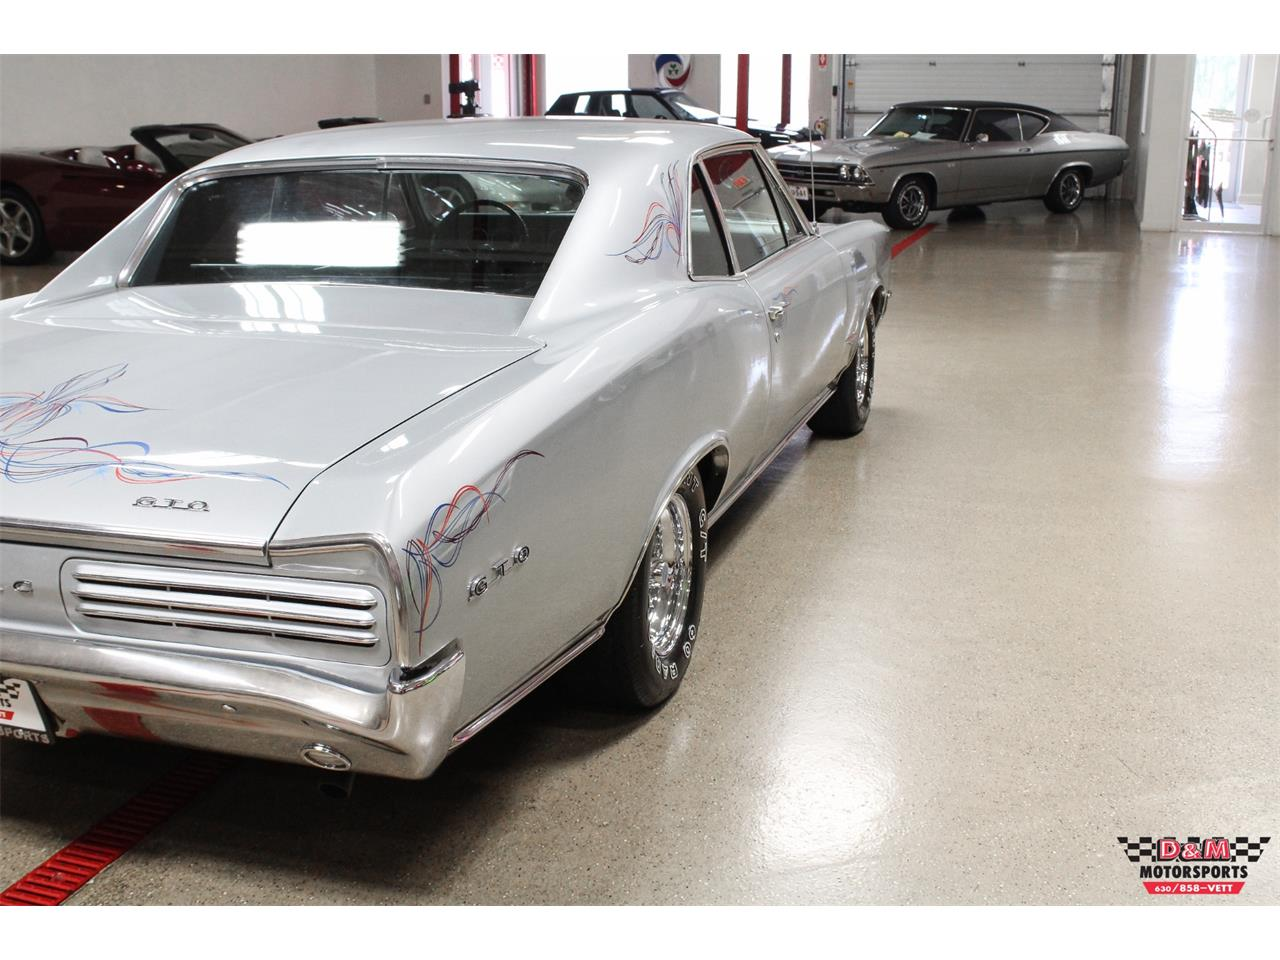 Large Picture of 1966 GTO located in Glen Ellyn Illinois Offered by D & M Motorsports - O7FS